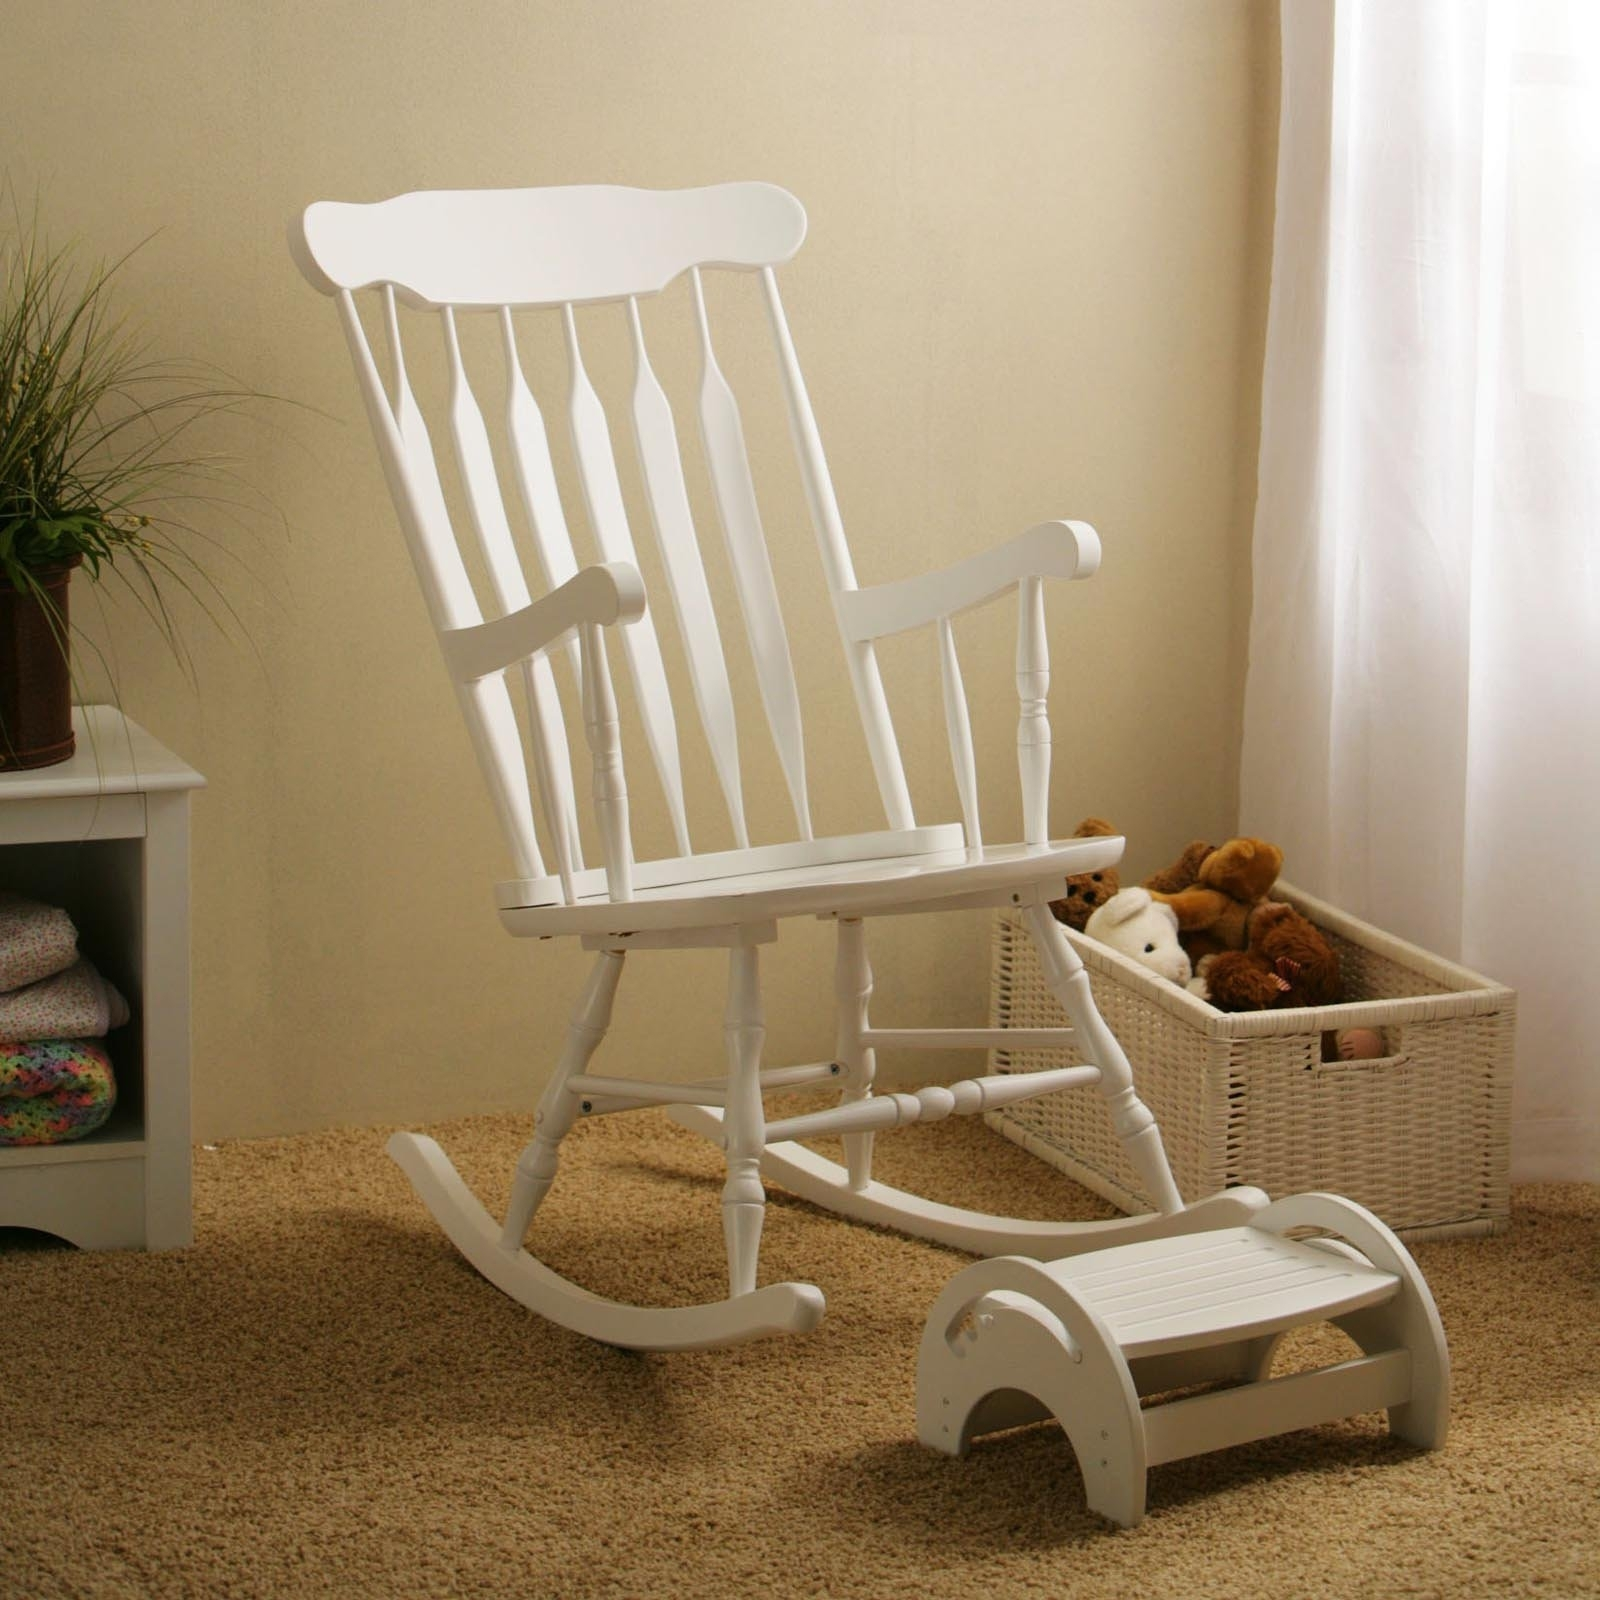 Original Rocking Chairs Nursery — Wilson Home Ideas : Healthy With Regard To Rocking Chairs For Nursery (#11 of 15)